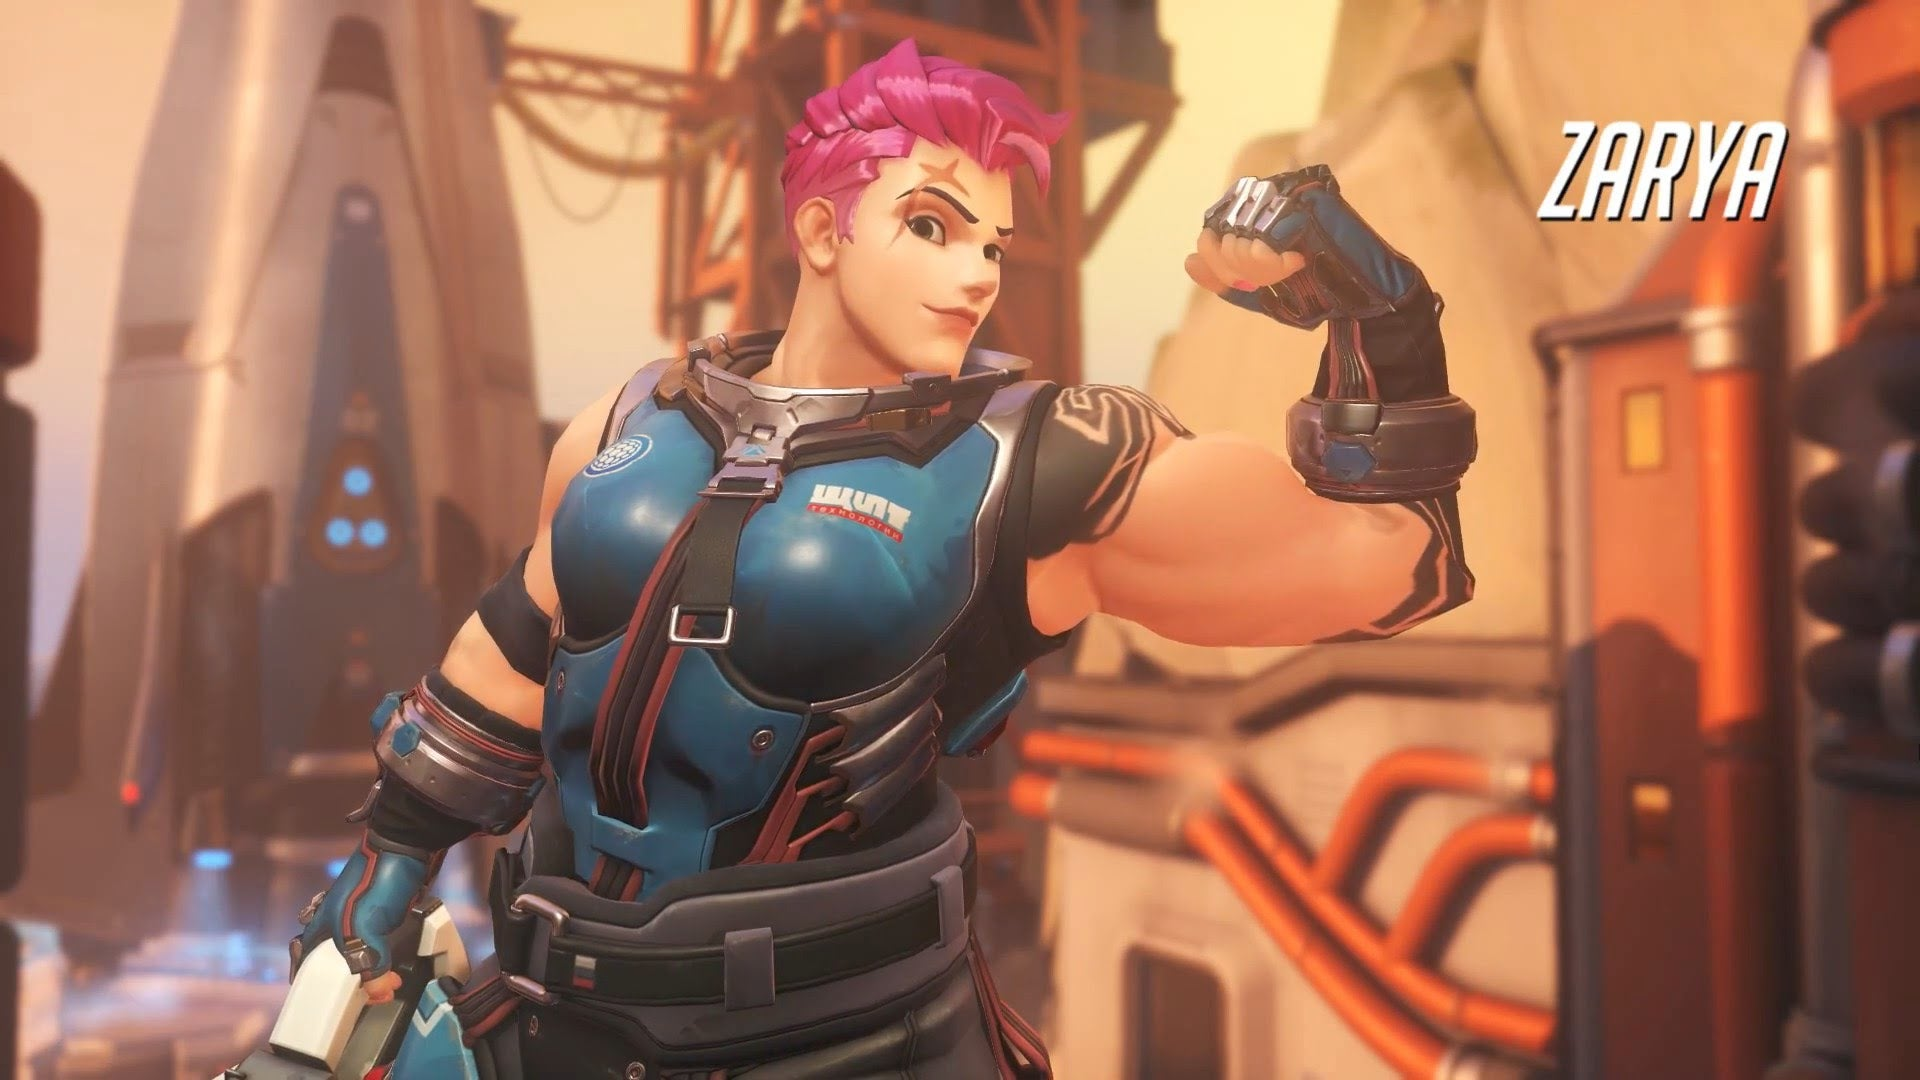 Korean Woman Kicks Arse At Overwatch, Gets Accused Of Cheating [Updated]